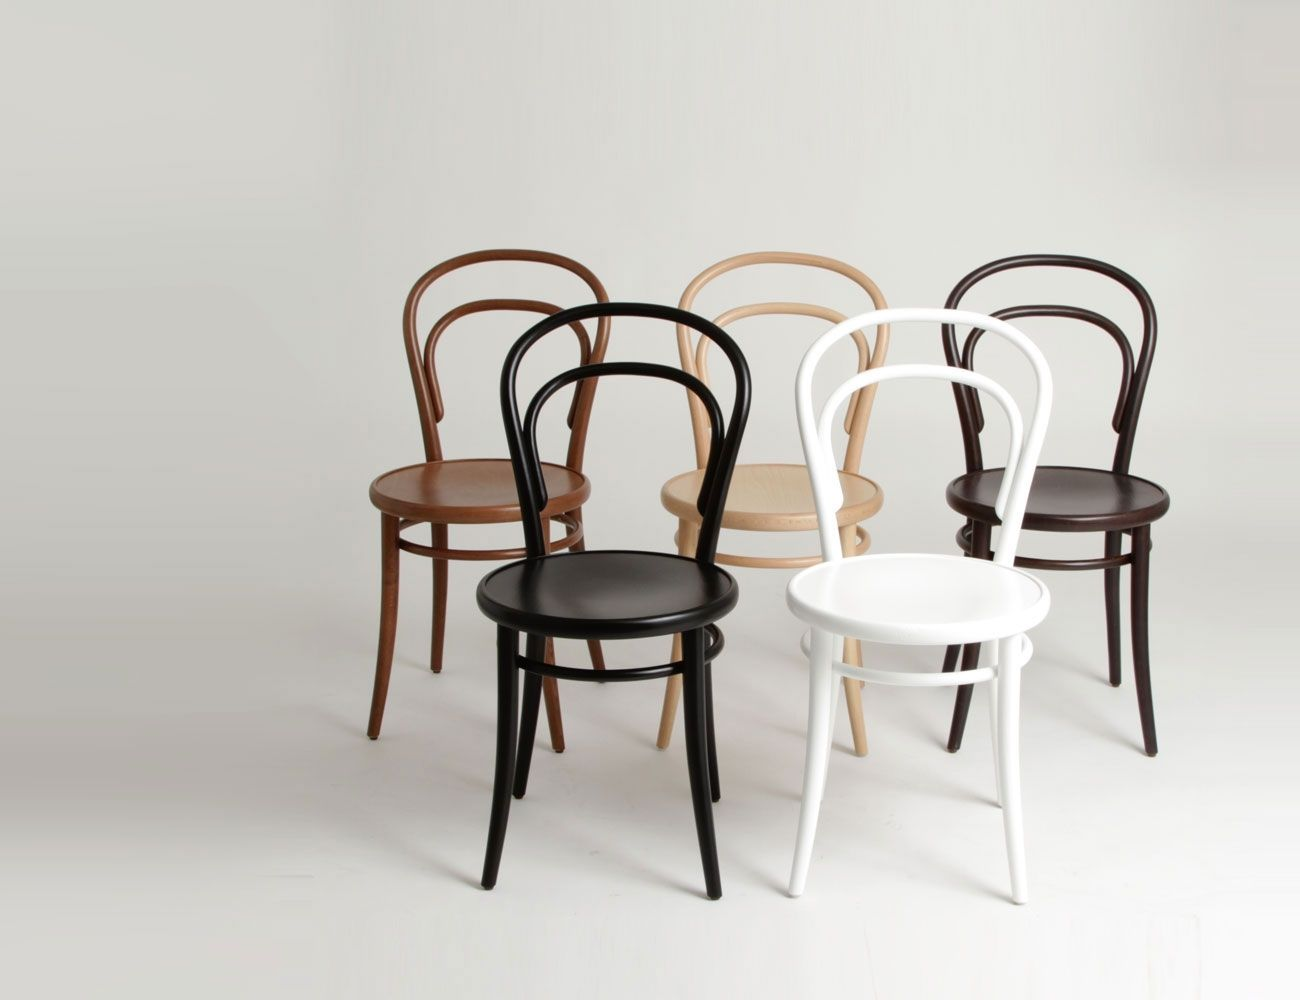 21 best The Great Thonet N14 images on Pinterest Chairs